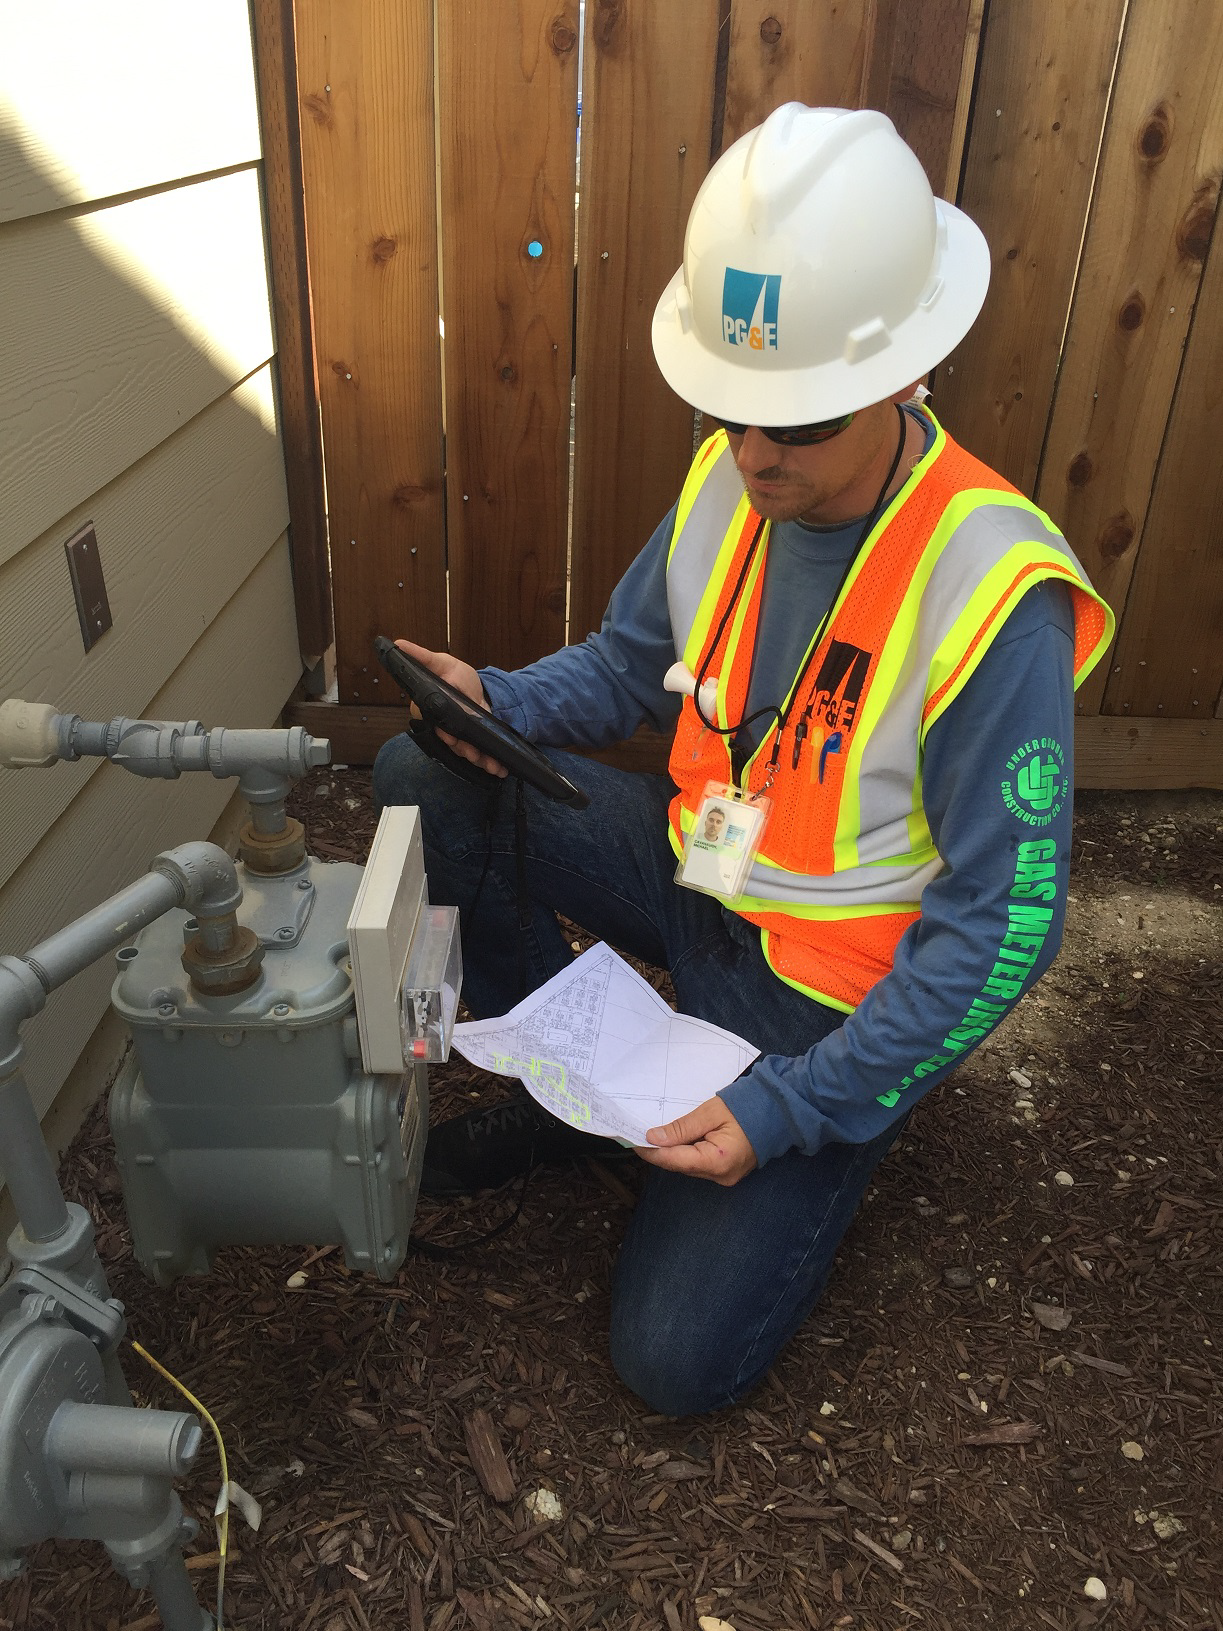 PG&E Inspection Invoice